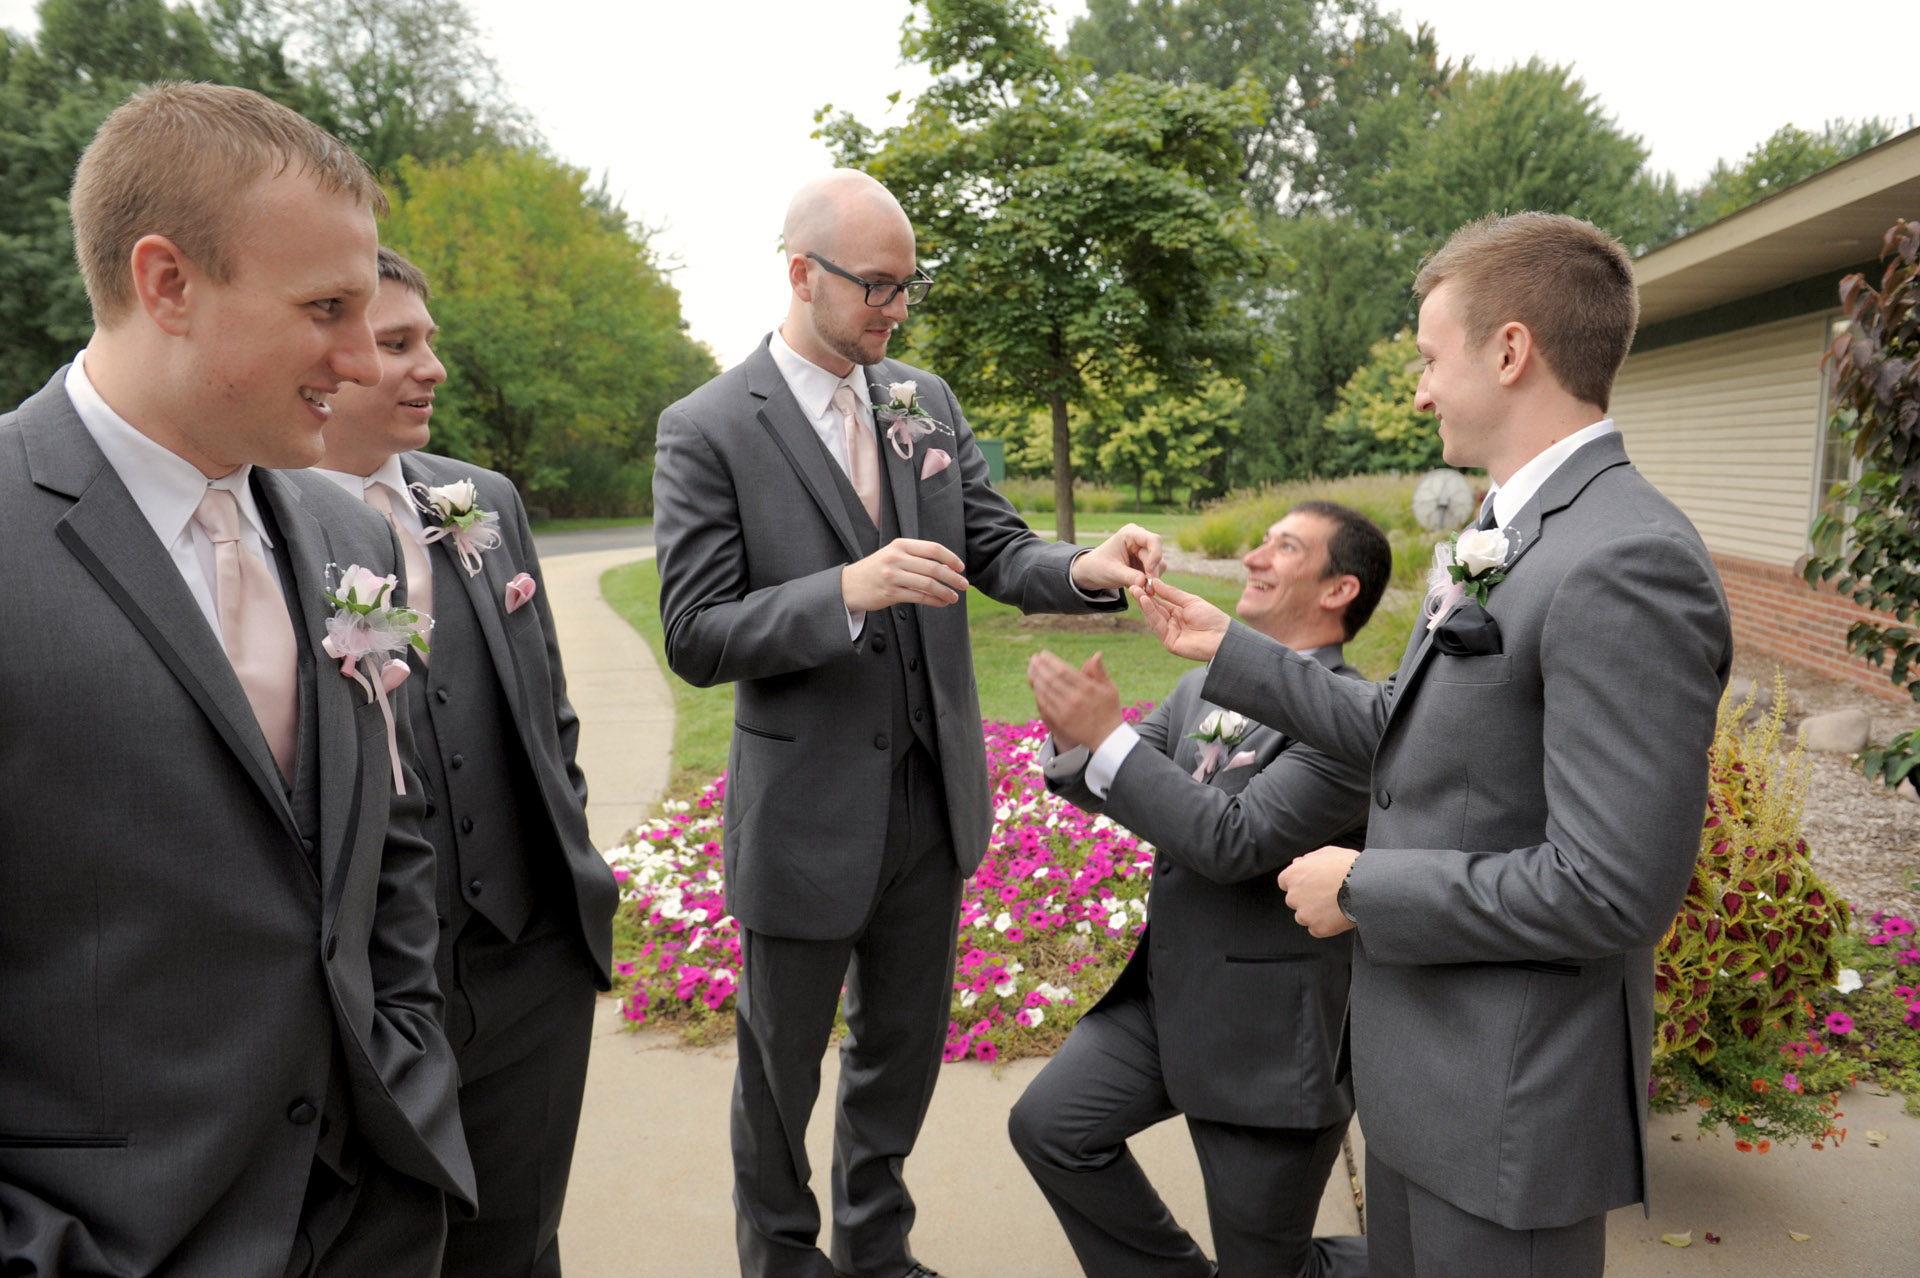 Woodlands of Van Buren in Wayne, Michigan wedding photographer's photo of the groomsmen goofing around pretending to propose the each other after a wedding at the The Woodlands of Van Buren in Wayne, Michigan.